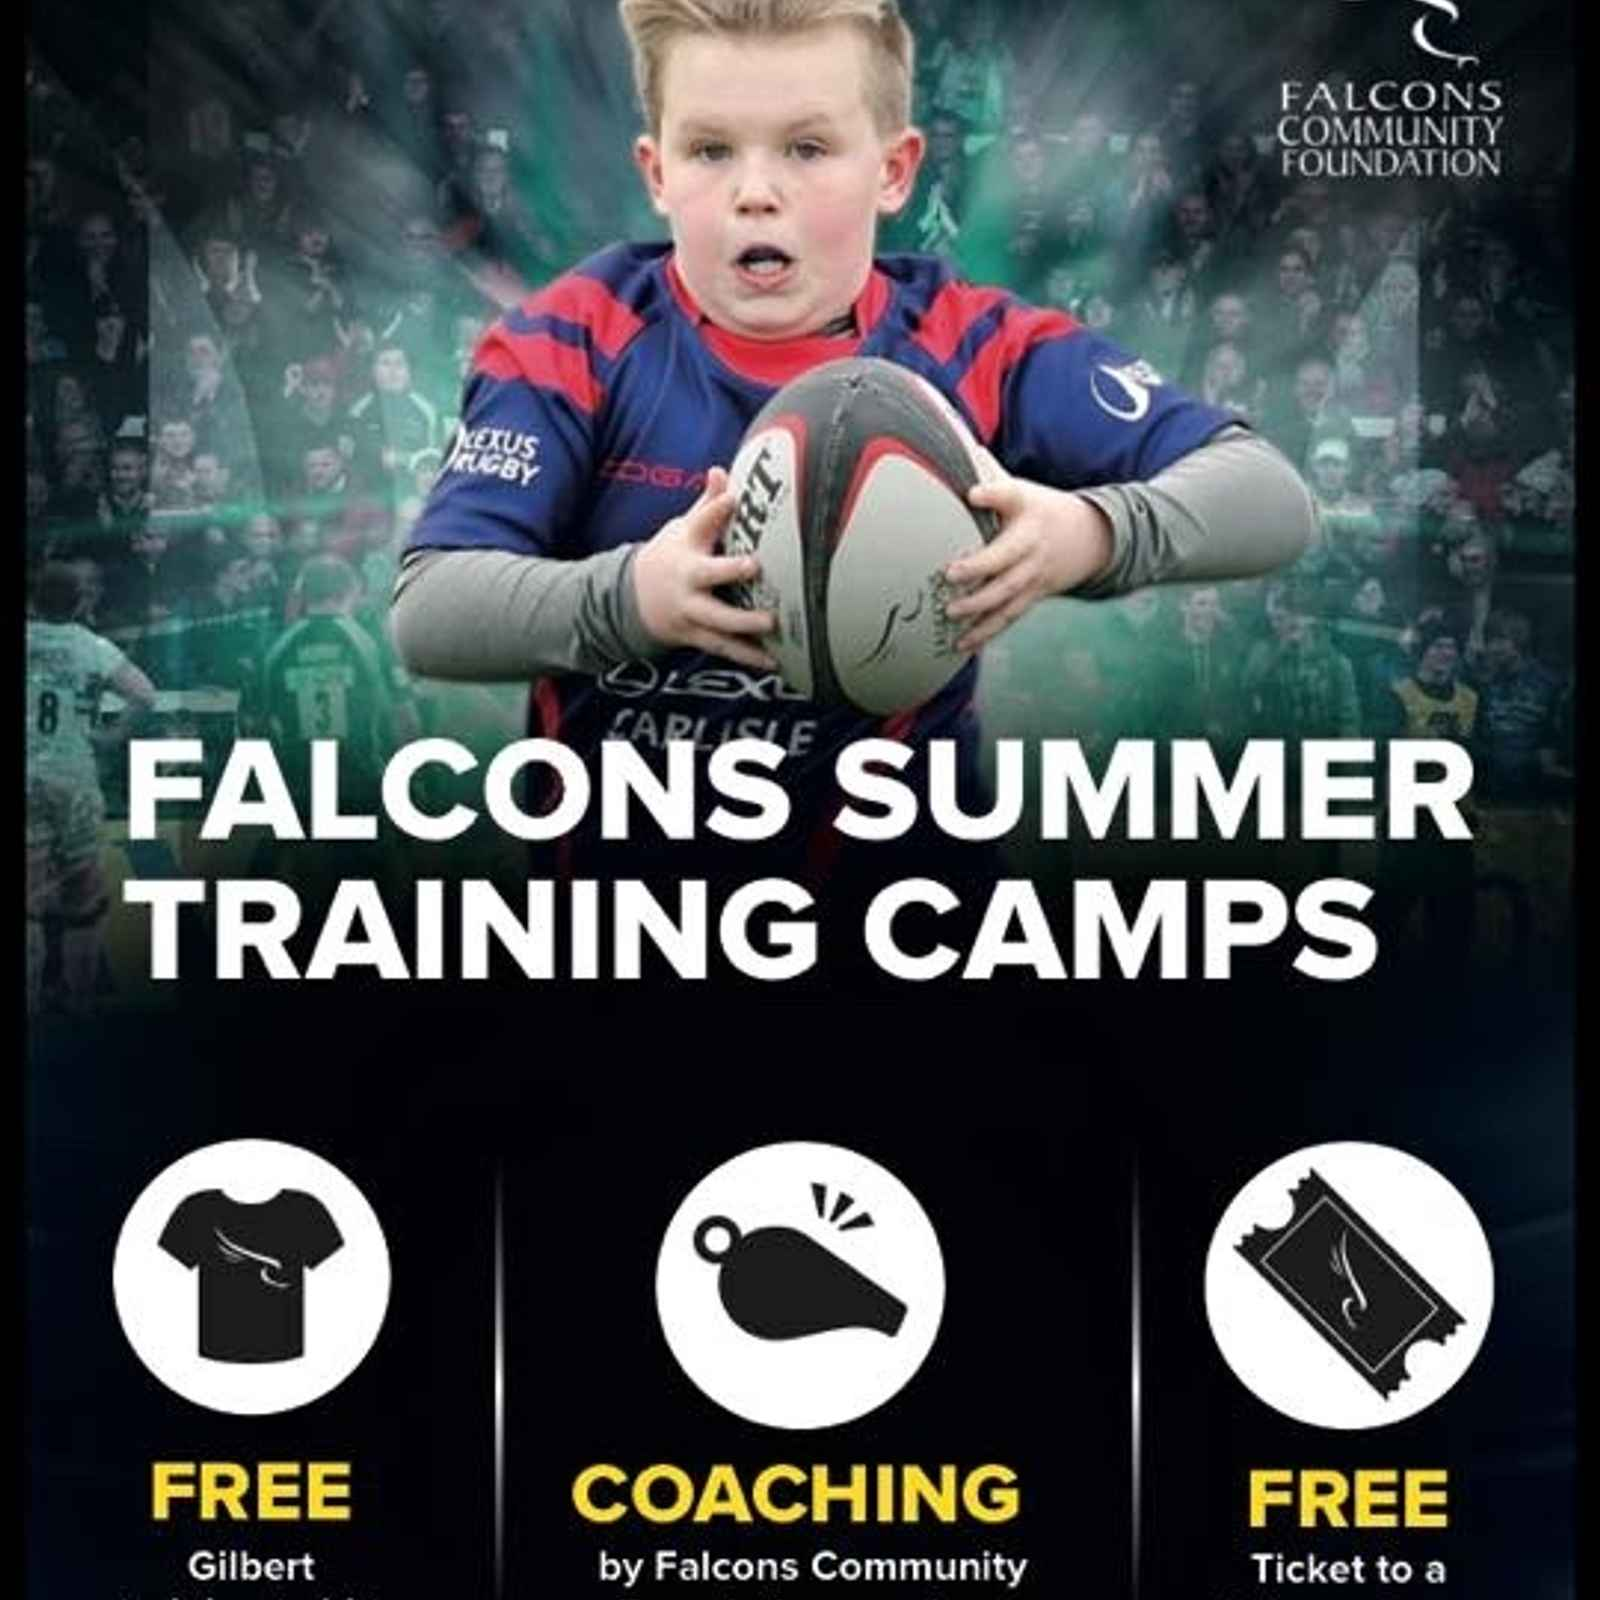 Falcons Summer Training Camps